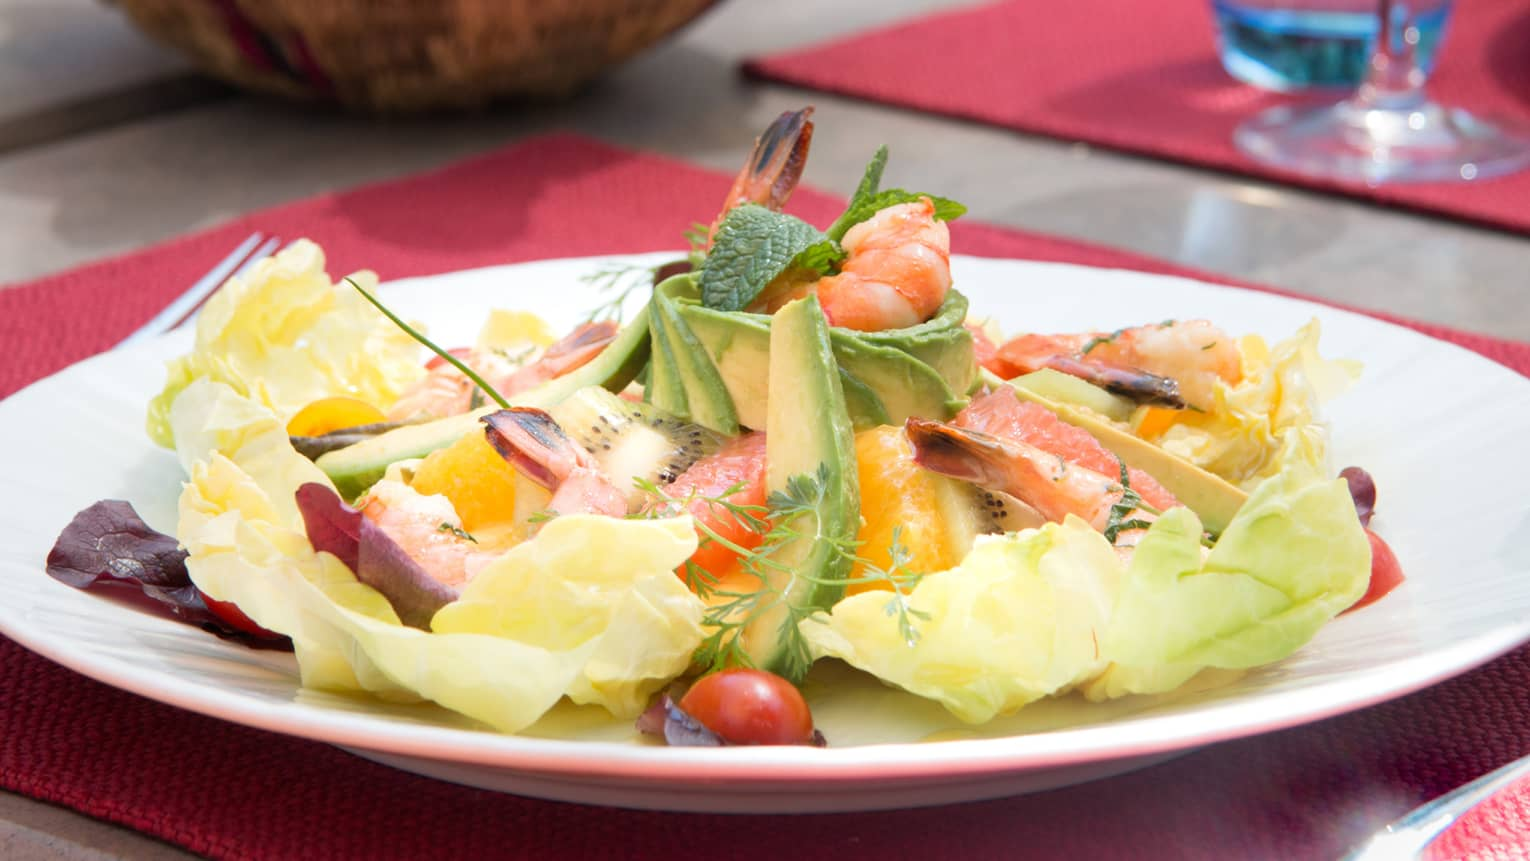 Cobb gambas salad with sliced avocado, egg, fruit arranged in layers on plate